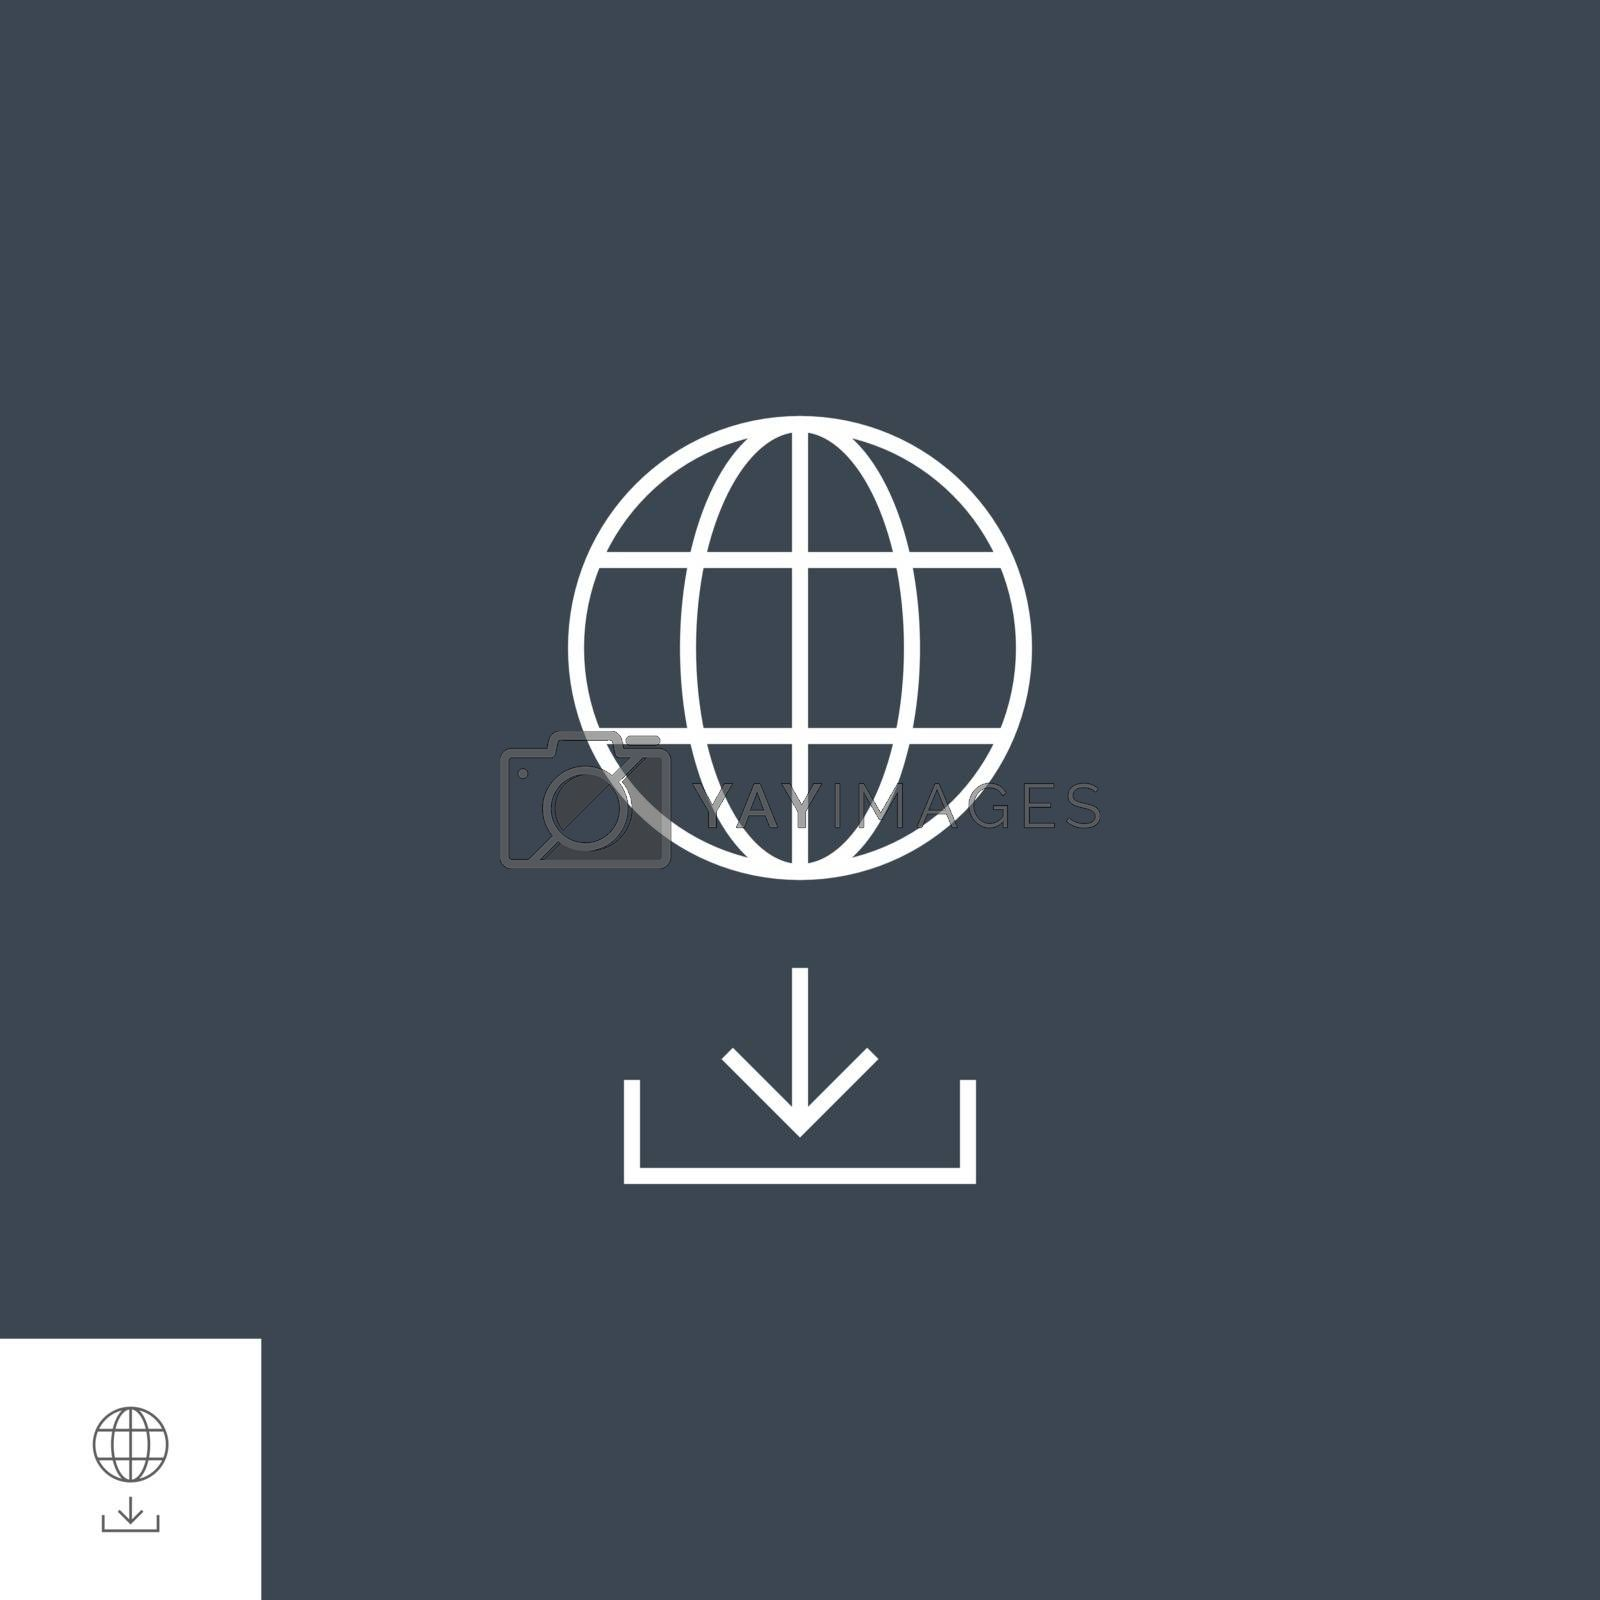 Upload Manager Related Vector Thin Line Icon. Isolated on Black Background. Editable Stroke. Vector Illustration.